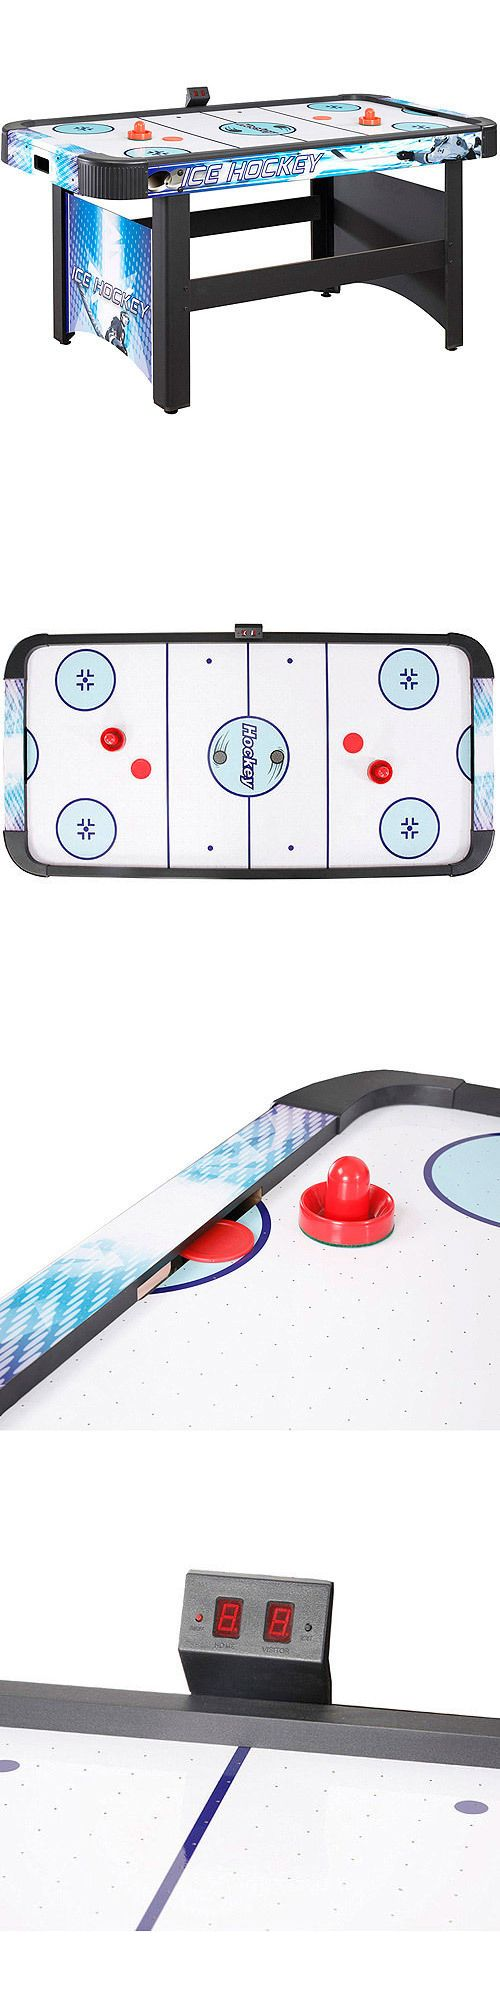 Air Hockey 36275: Deluxe Air Hockey 5 Ft Table With Electronic Scoring Multi Game Auto Puck Return BUY IT NOW ONLY: $377.17